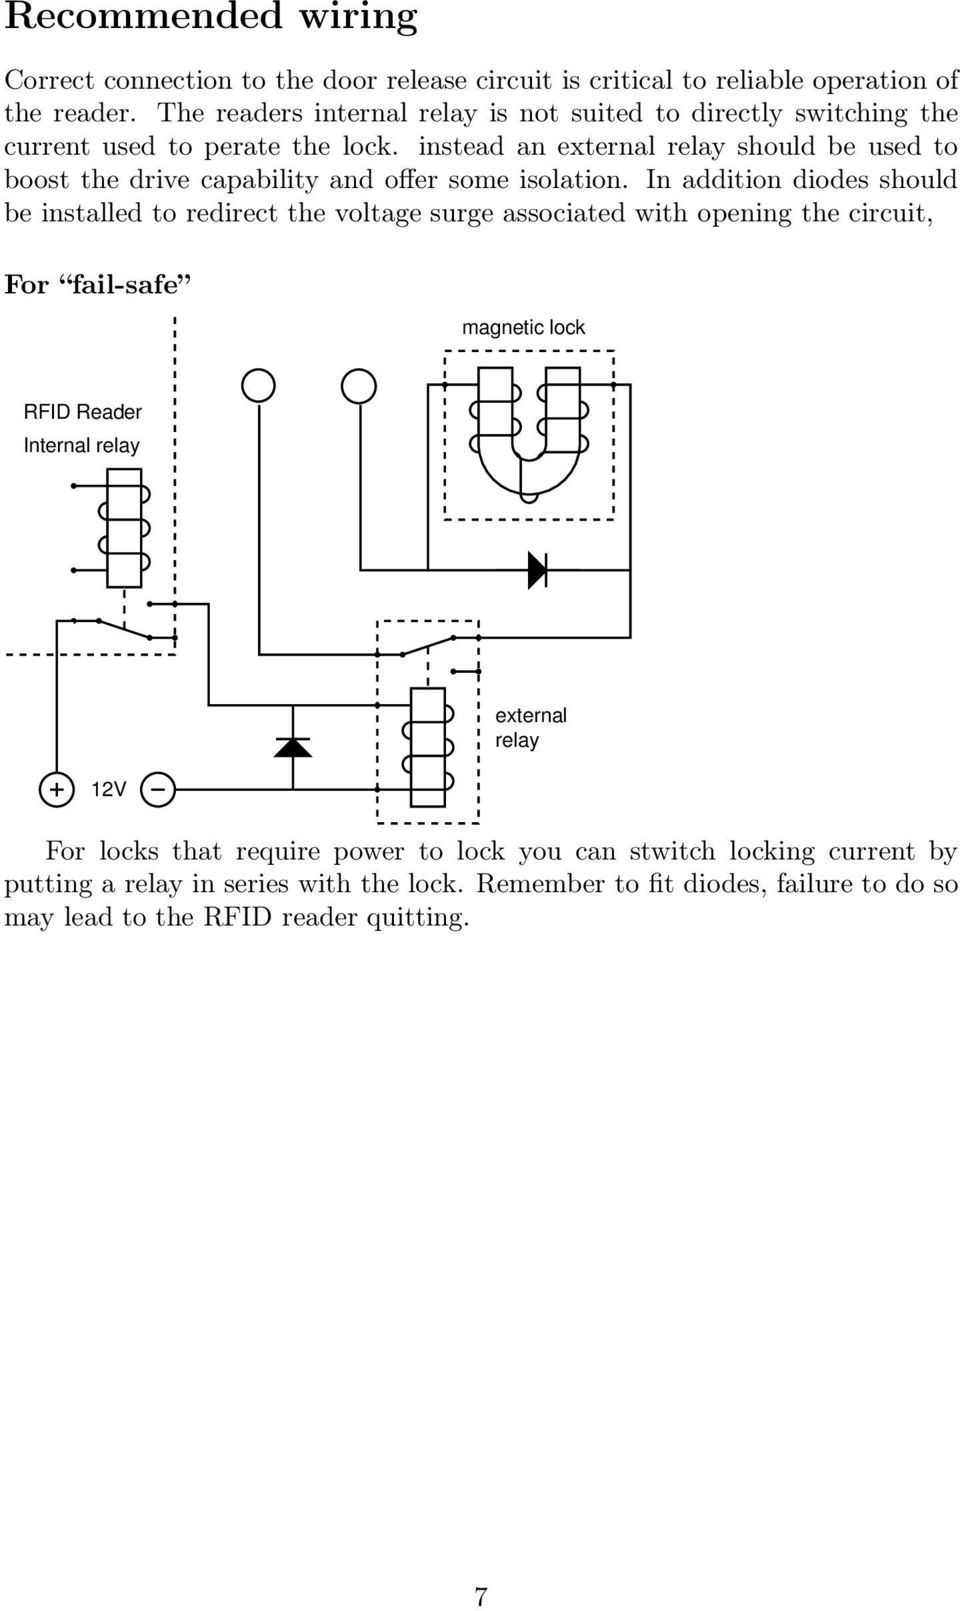 Installation Instructions For Network Readers Pdf Power Outage Relay Instead An External Should Be Used To Boost The Drive Capability And Offer Some Isolation